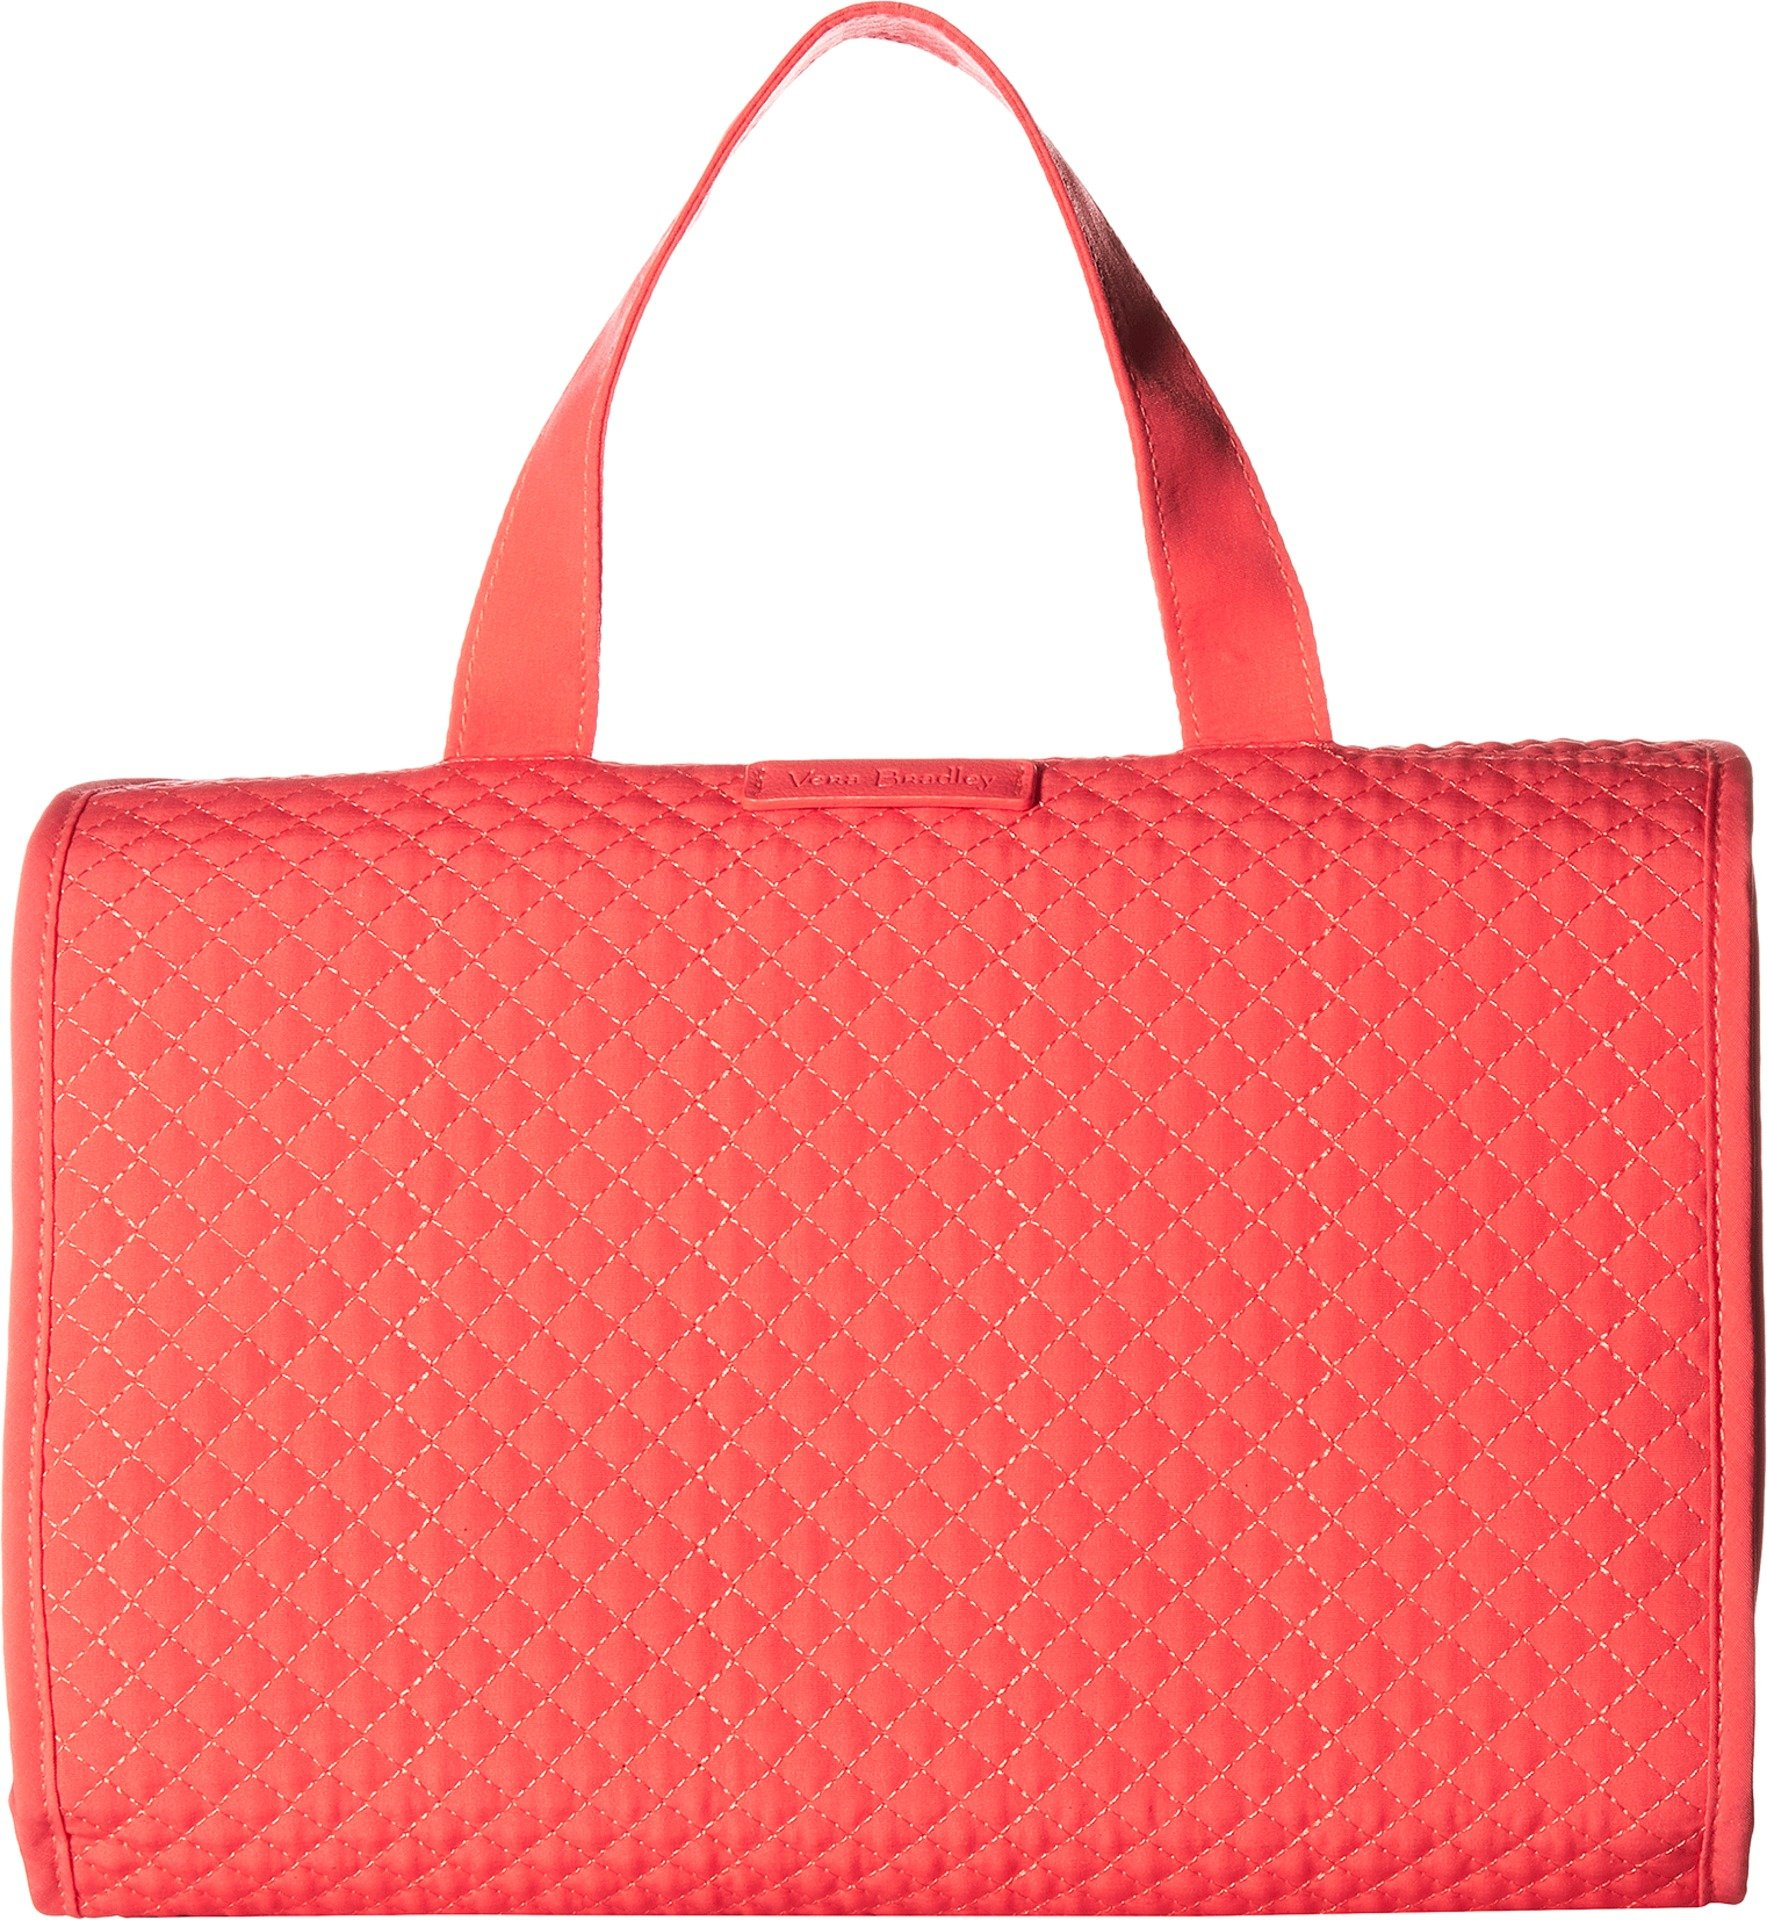 Vera Bradley Iconic Hanging Travel Organizer, Microfiber, Coral Reef, One Size